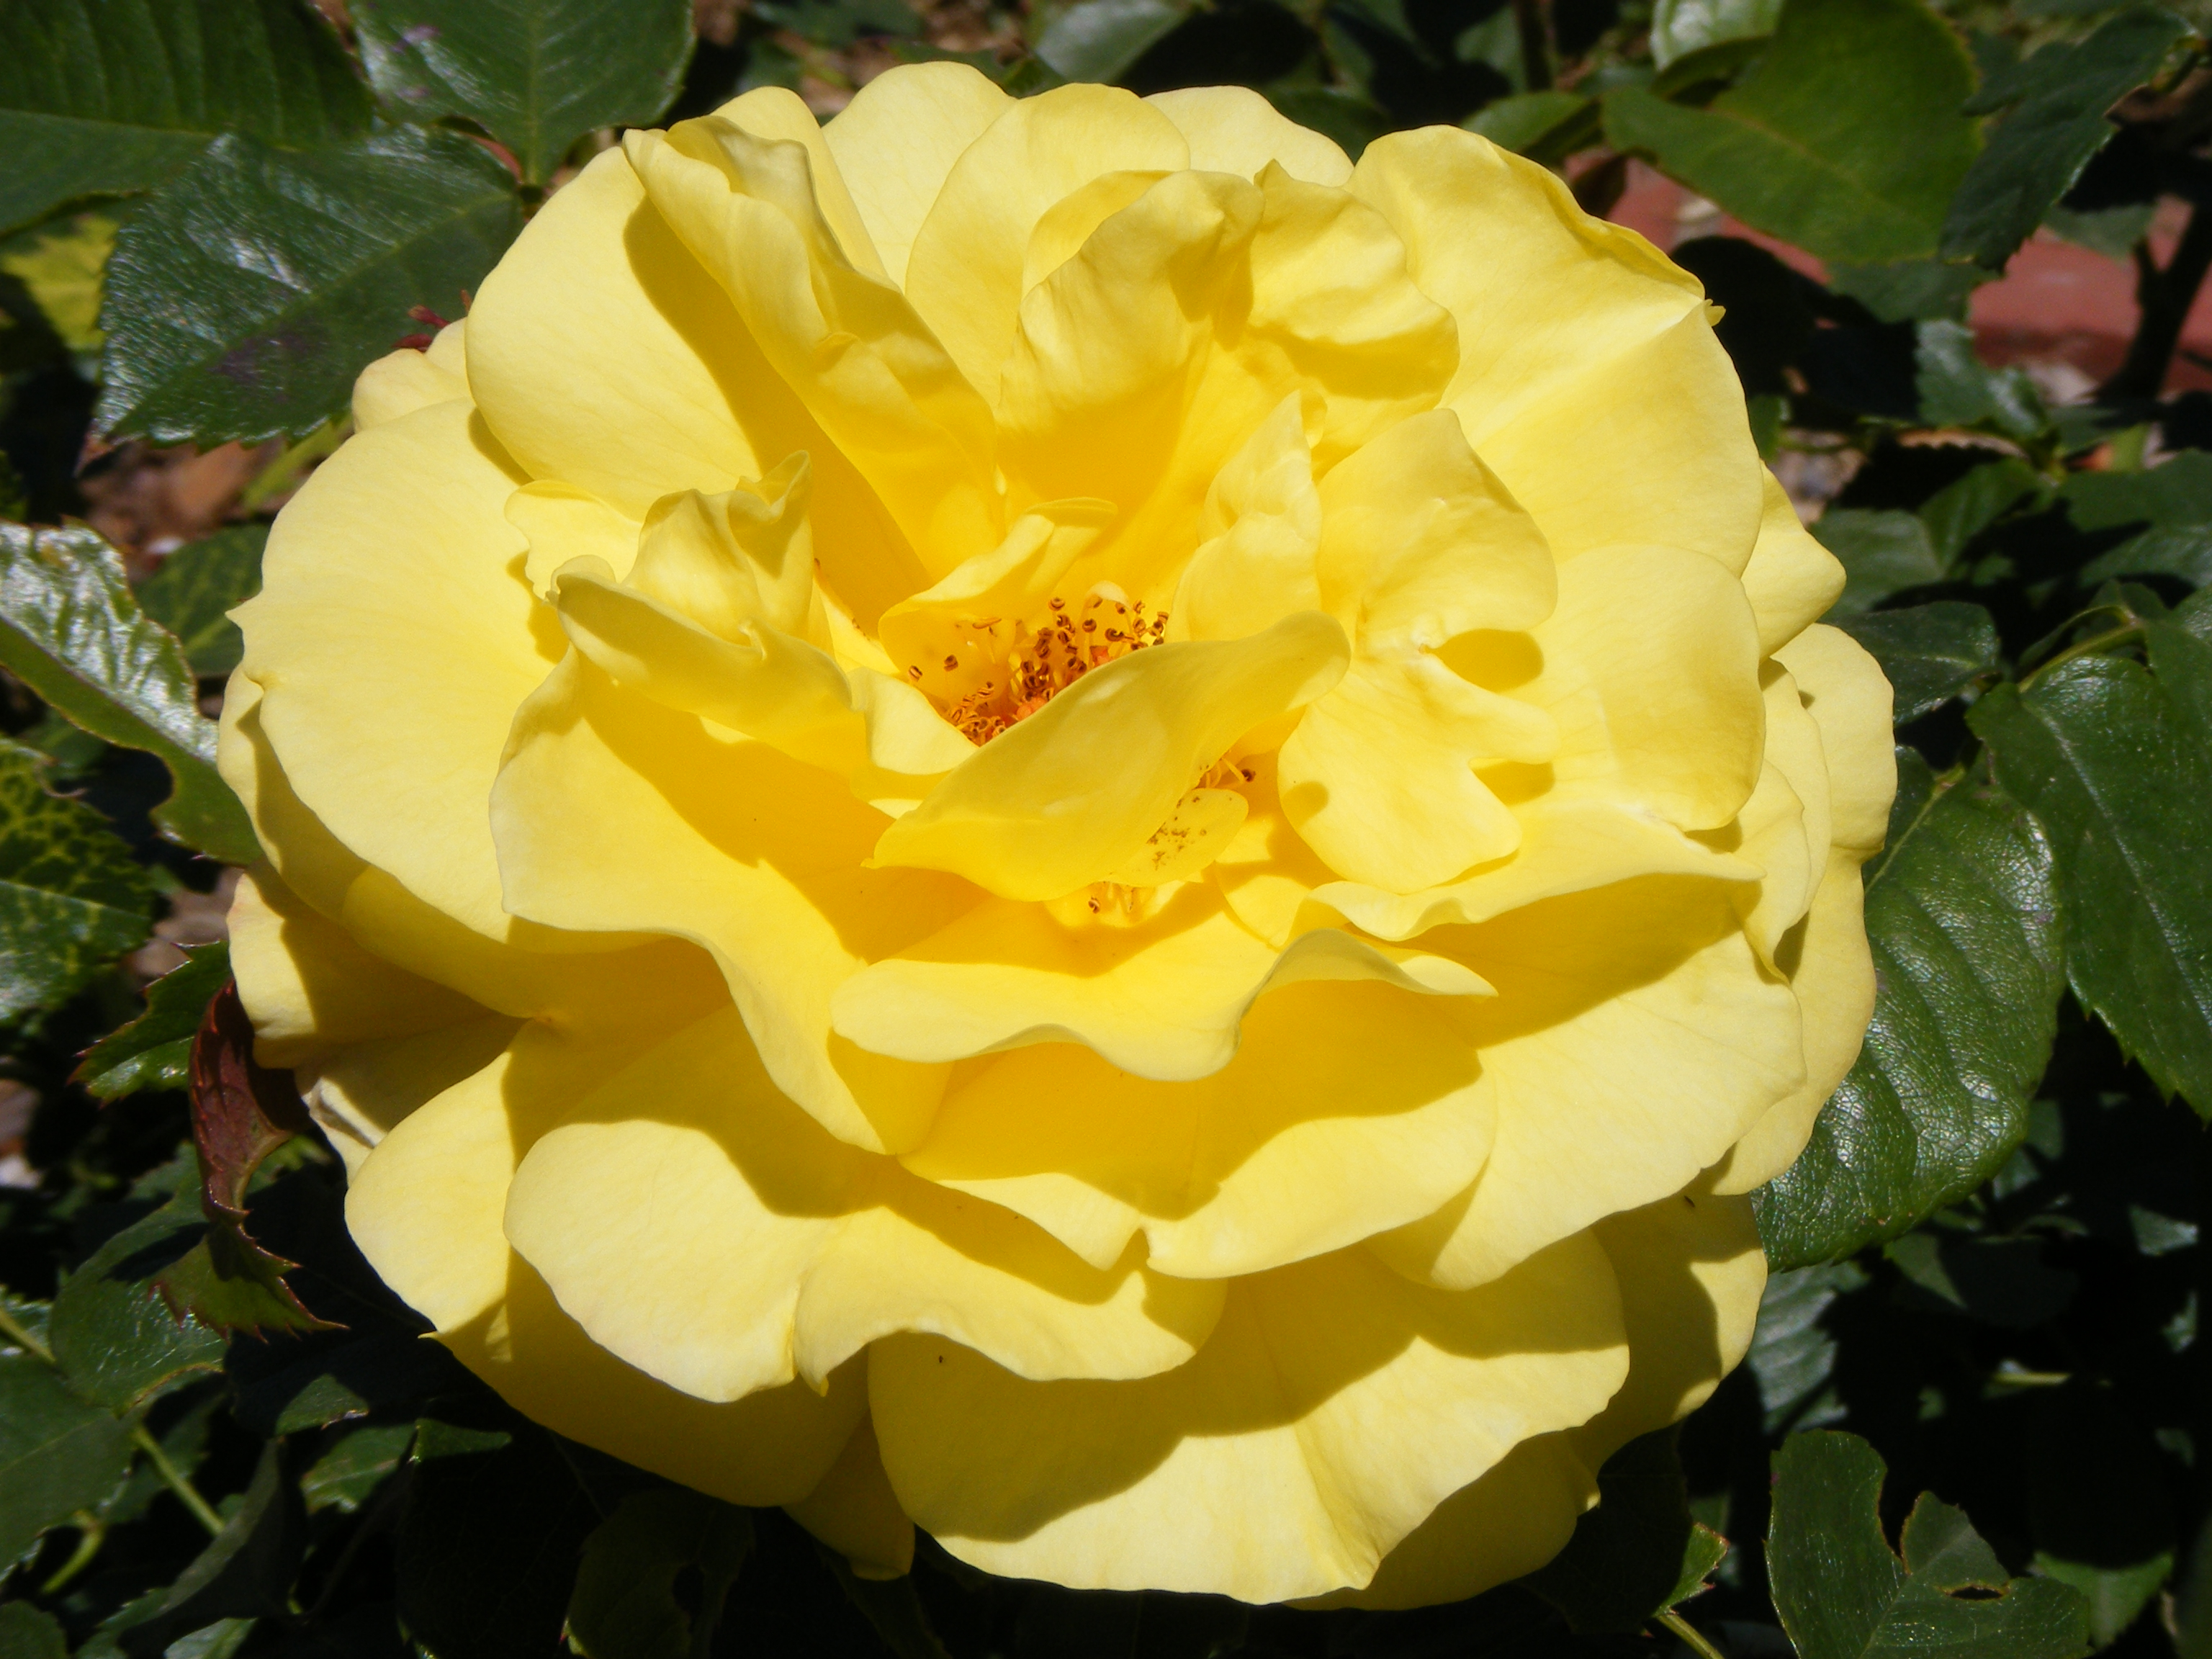 File:Bright yellow rose.jpg